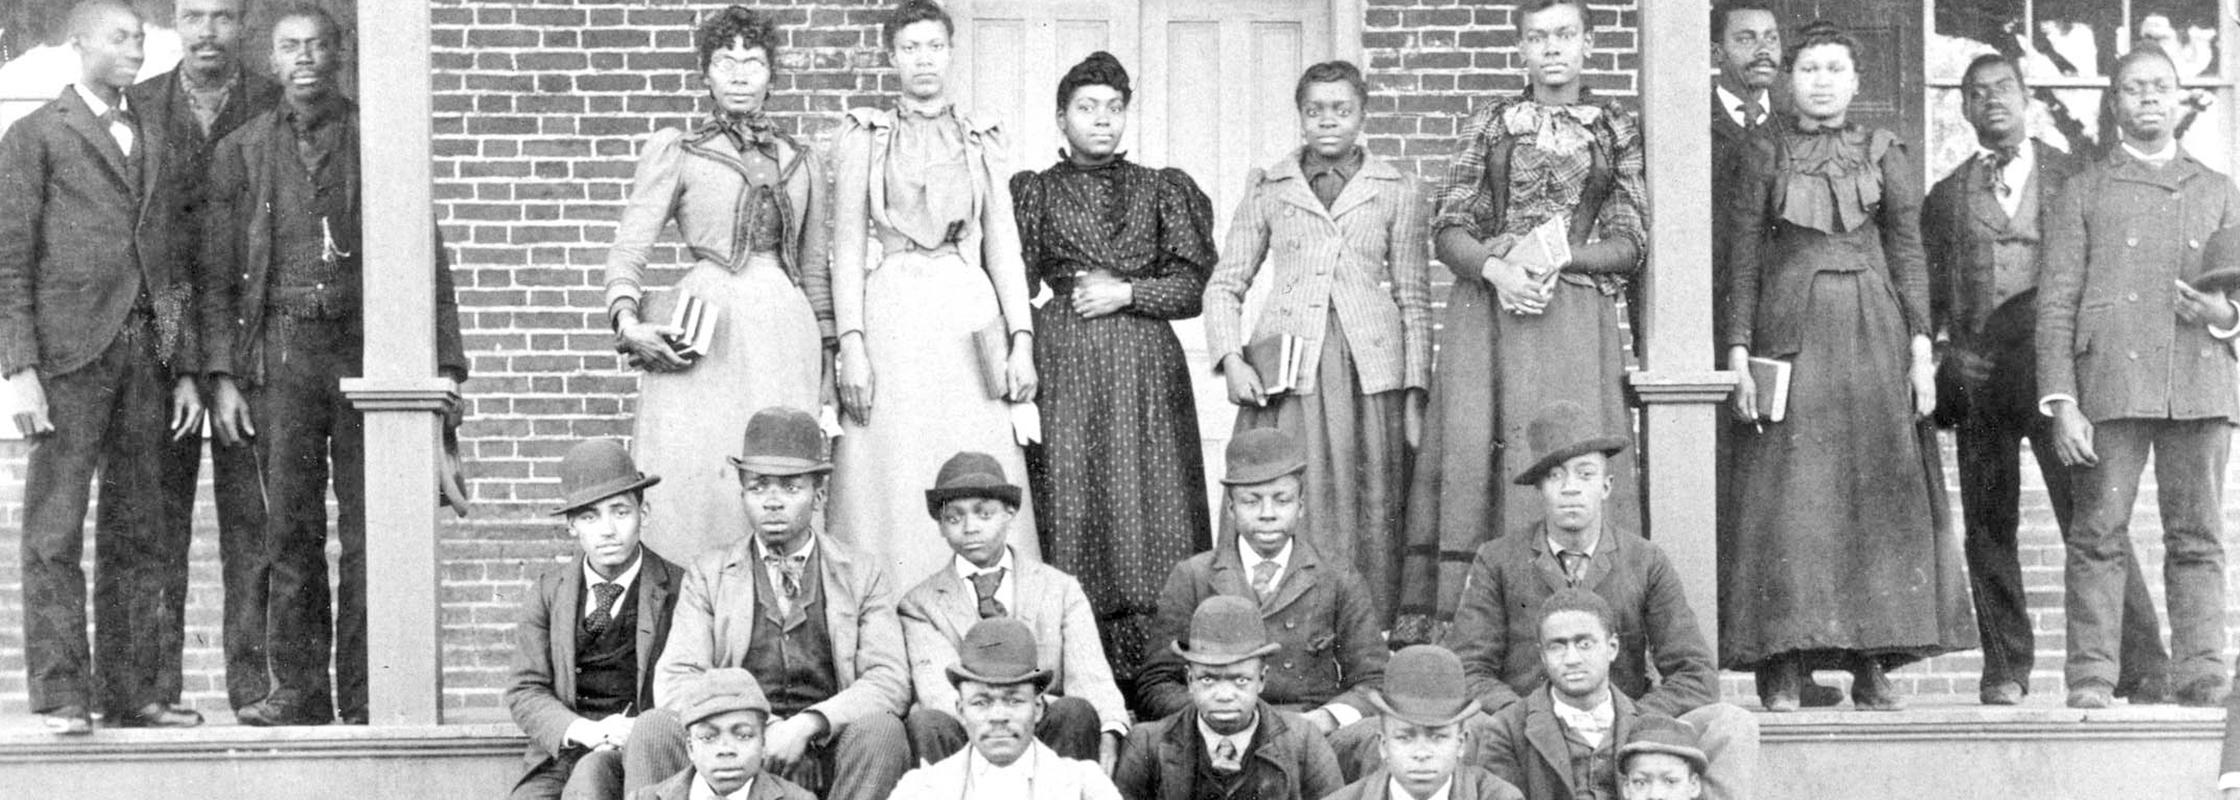 1890 students at Delaware State College